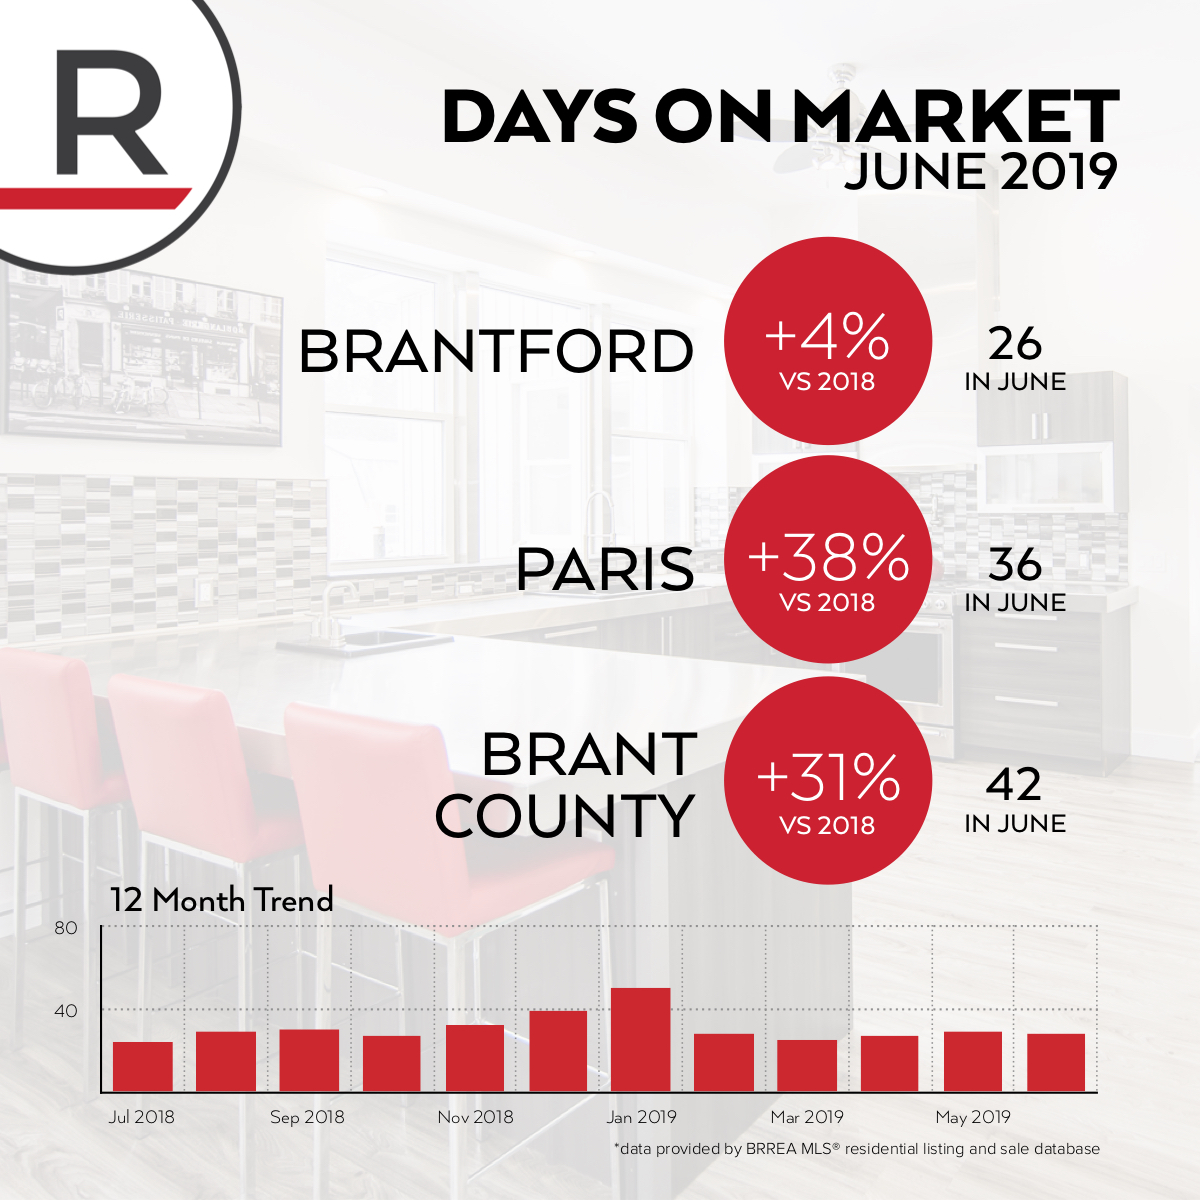 The time to sell a home is up between 4% and 38% across the region compared to the same time last year. In Brantford, the average home is selling in only 26 days, while in Paris it takes an average of 36 days. In the county, it takes an average of 6 weeks to sell a property.